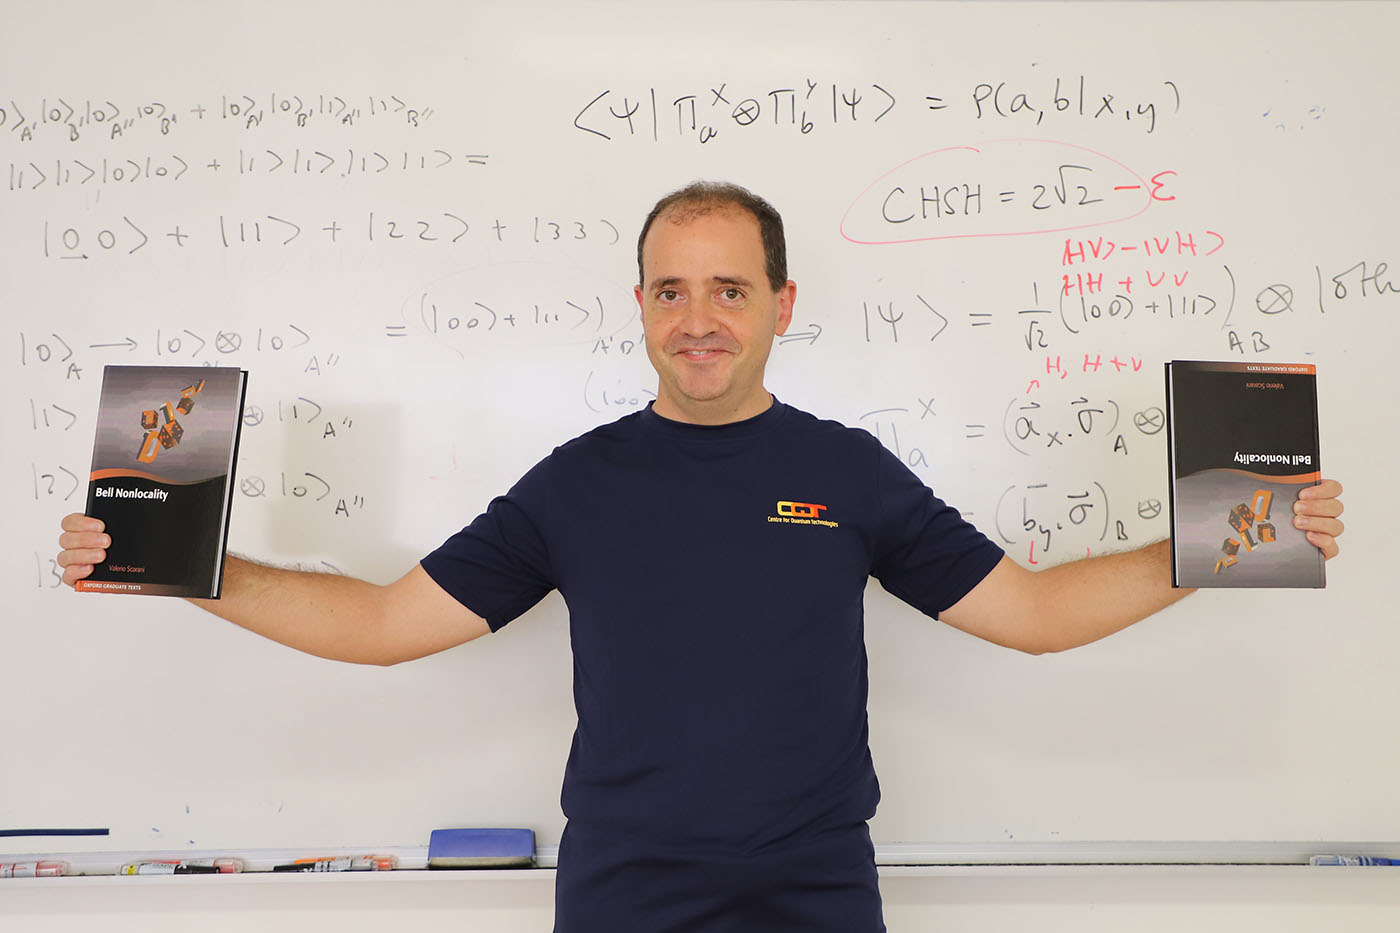 Valerio Scarani with two copies of his book in front of a whiteboard with quantum physics equations